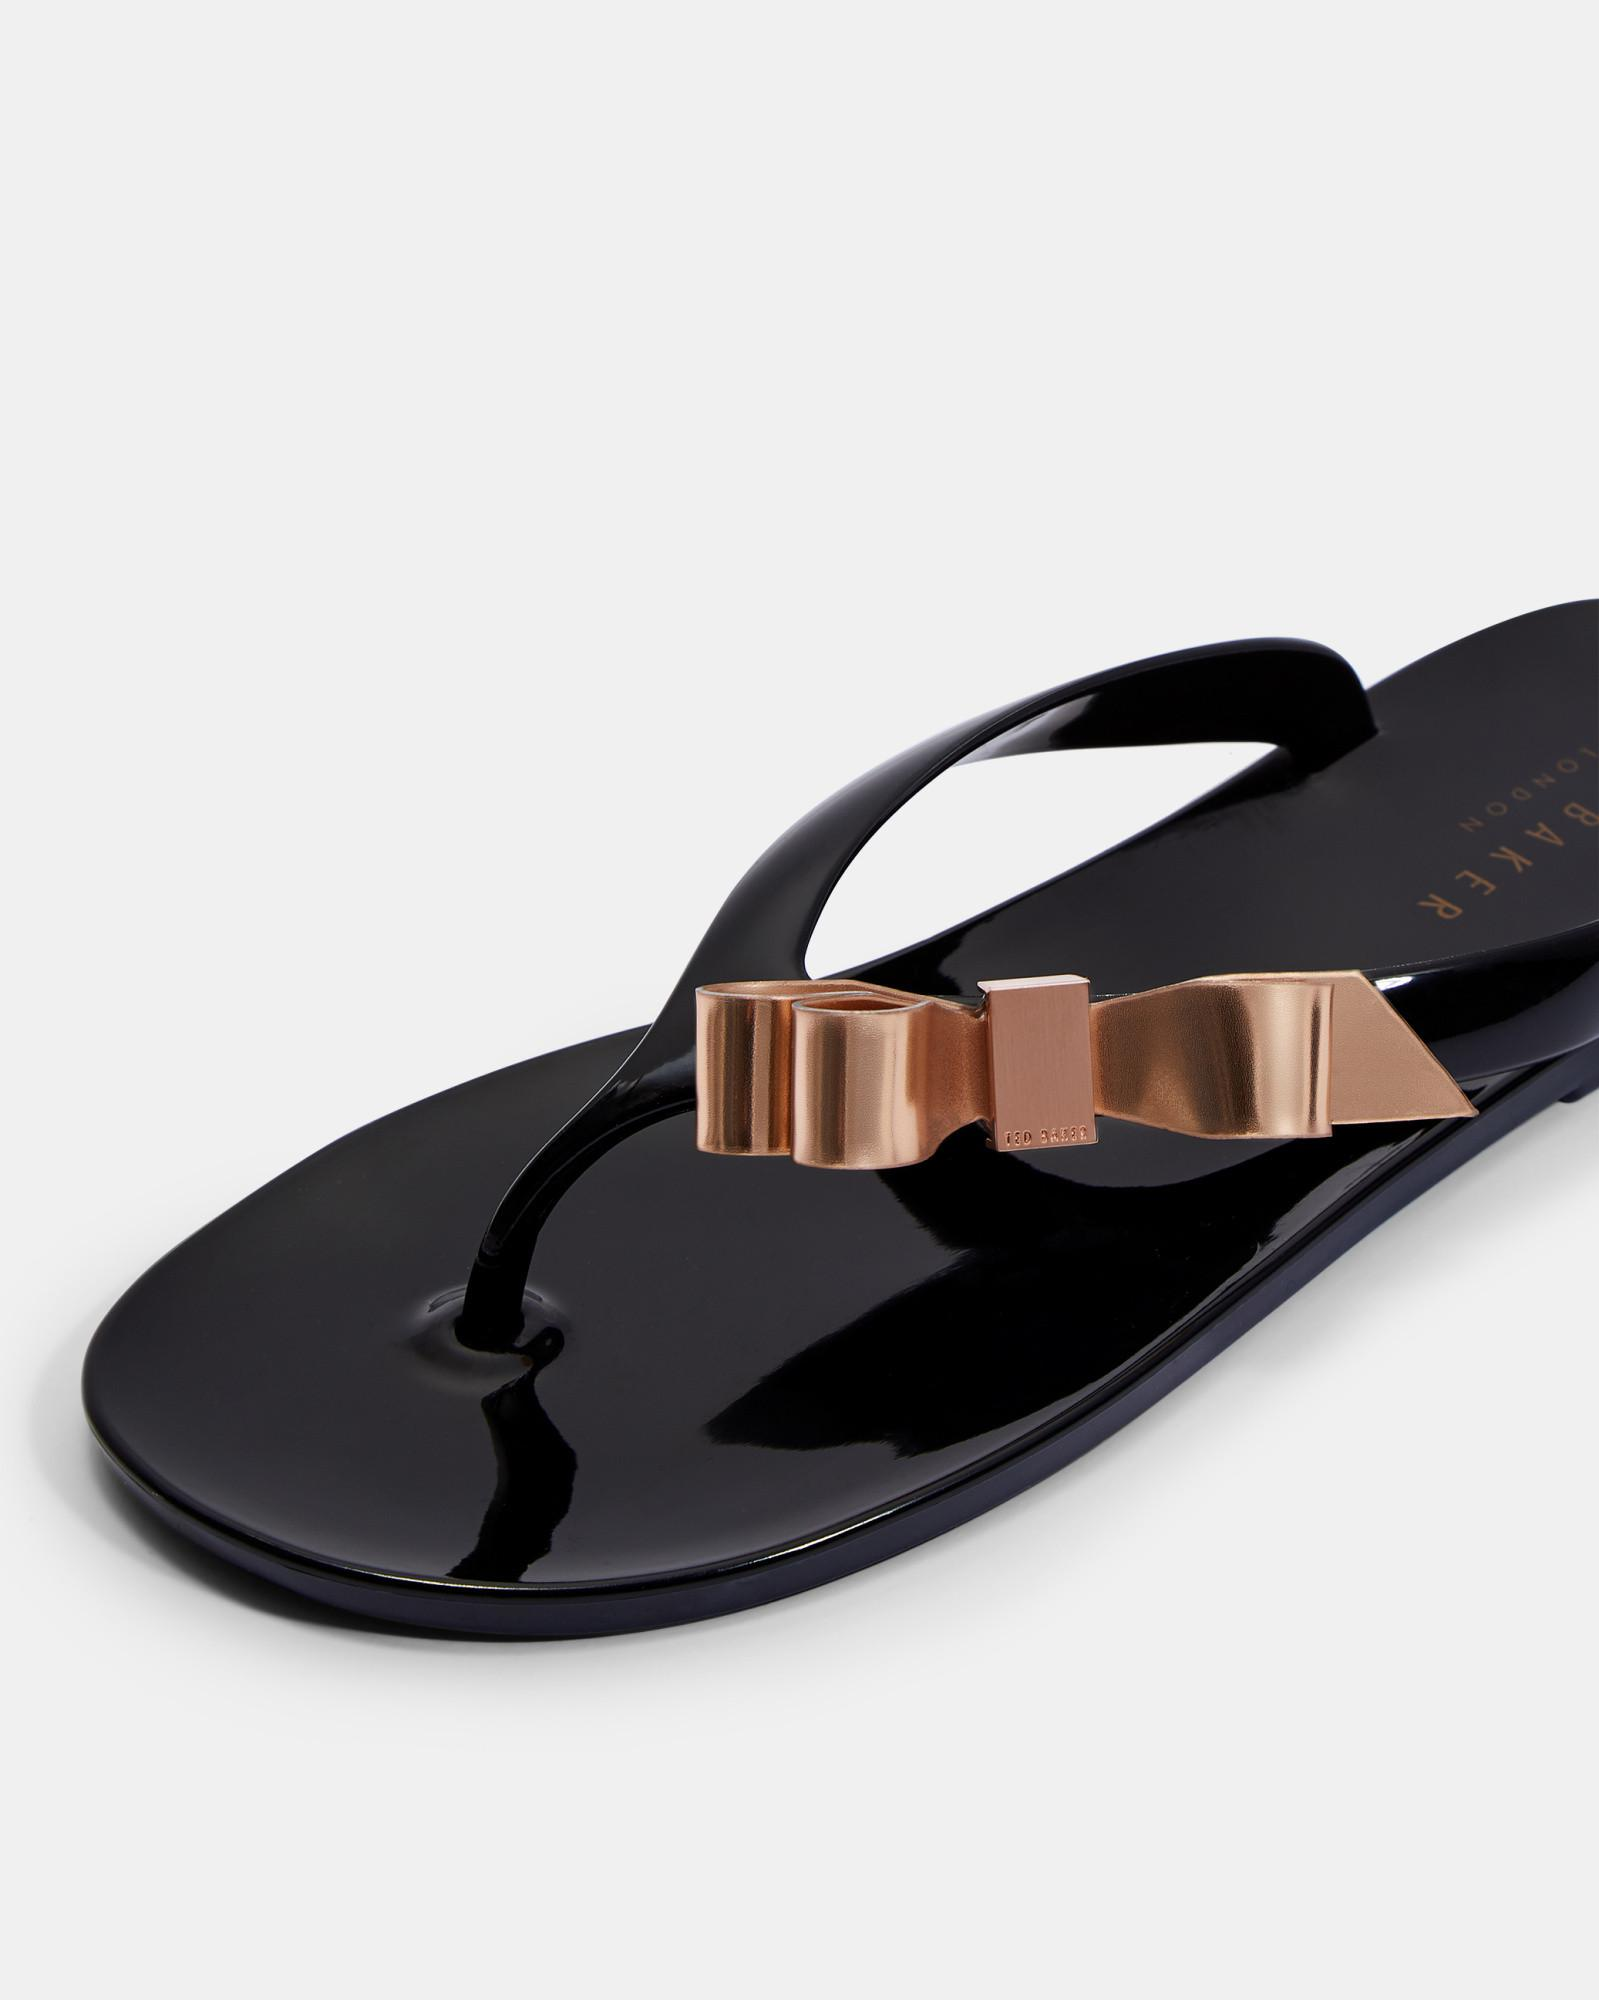 8d9b16ade Lyst - Ted Baker Bow Detail Jelly Flip Flops in Black - Save 52%